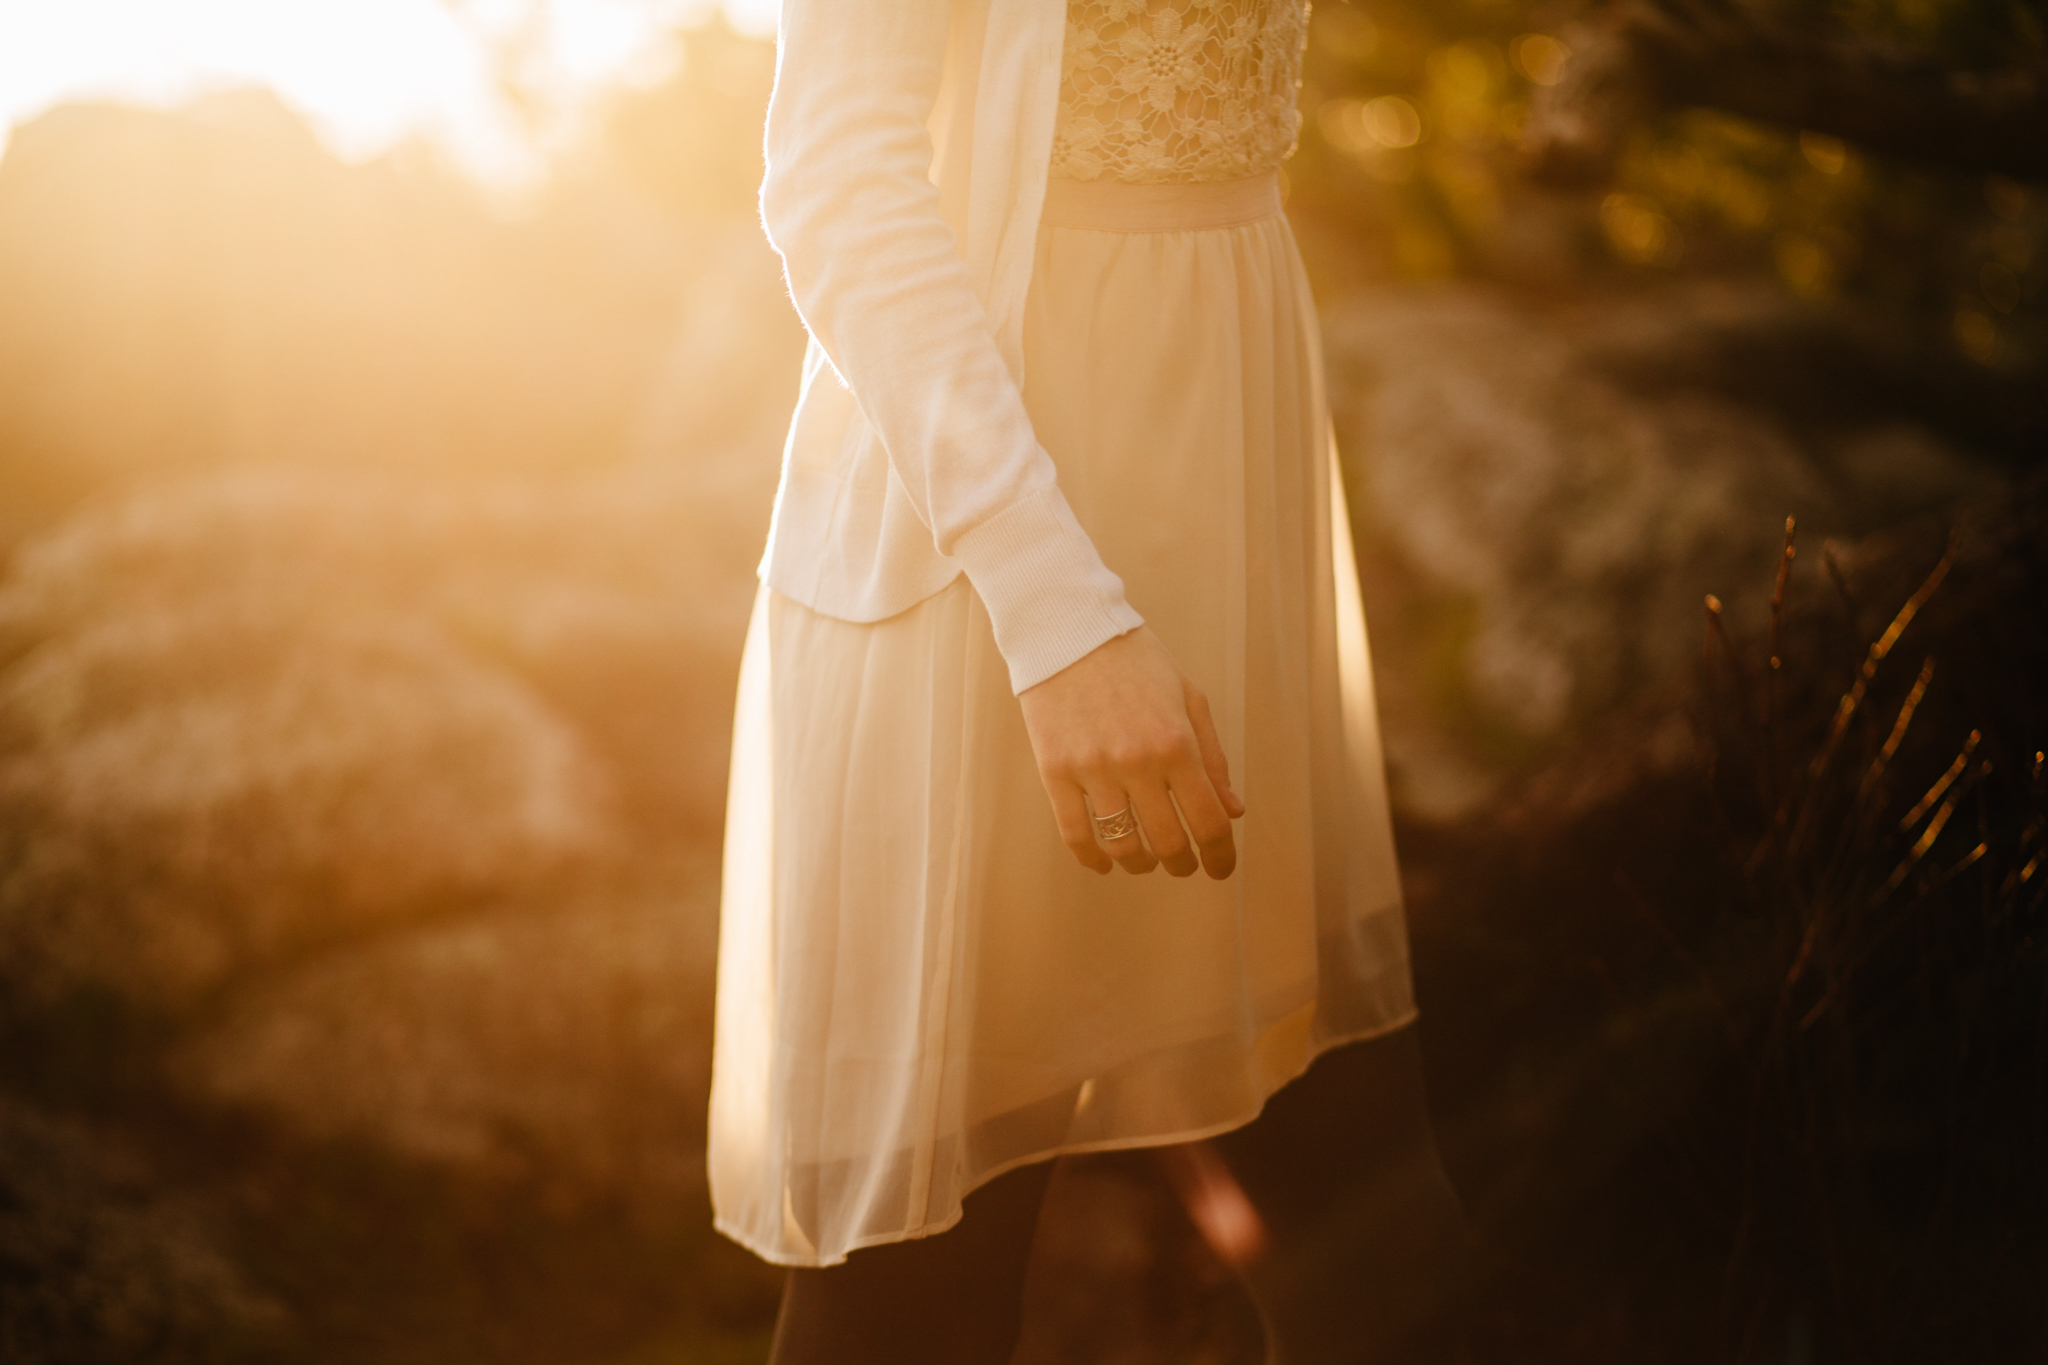 Vancouver Whytecliff Park Engagement Photographer - Emmy Lou Virginia Photography-22.jpg